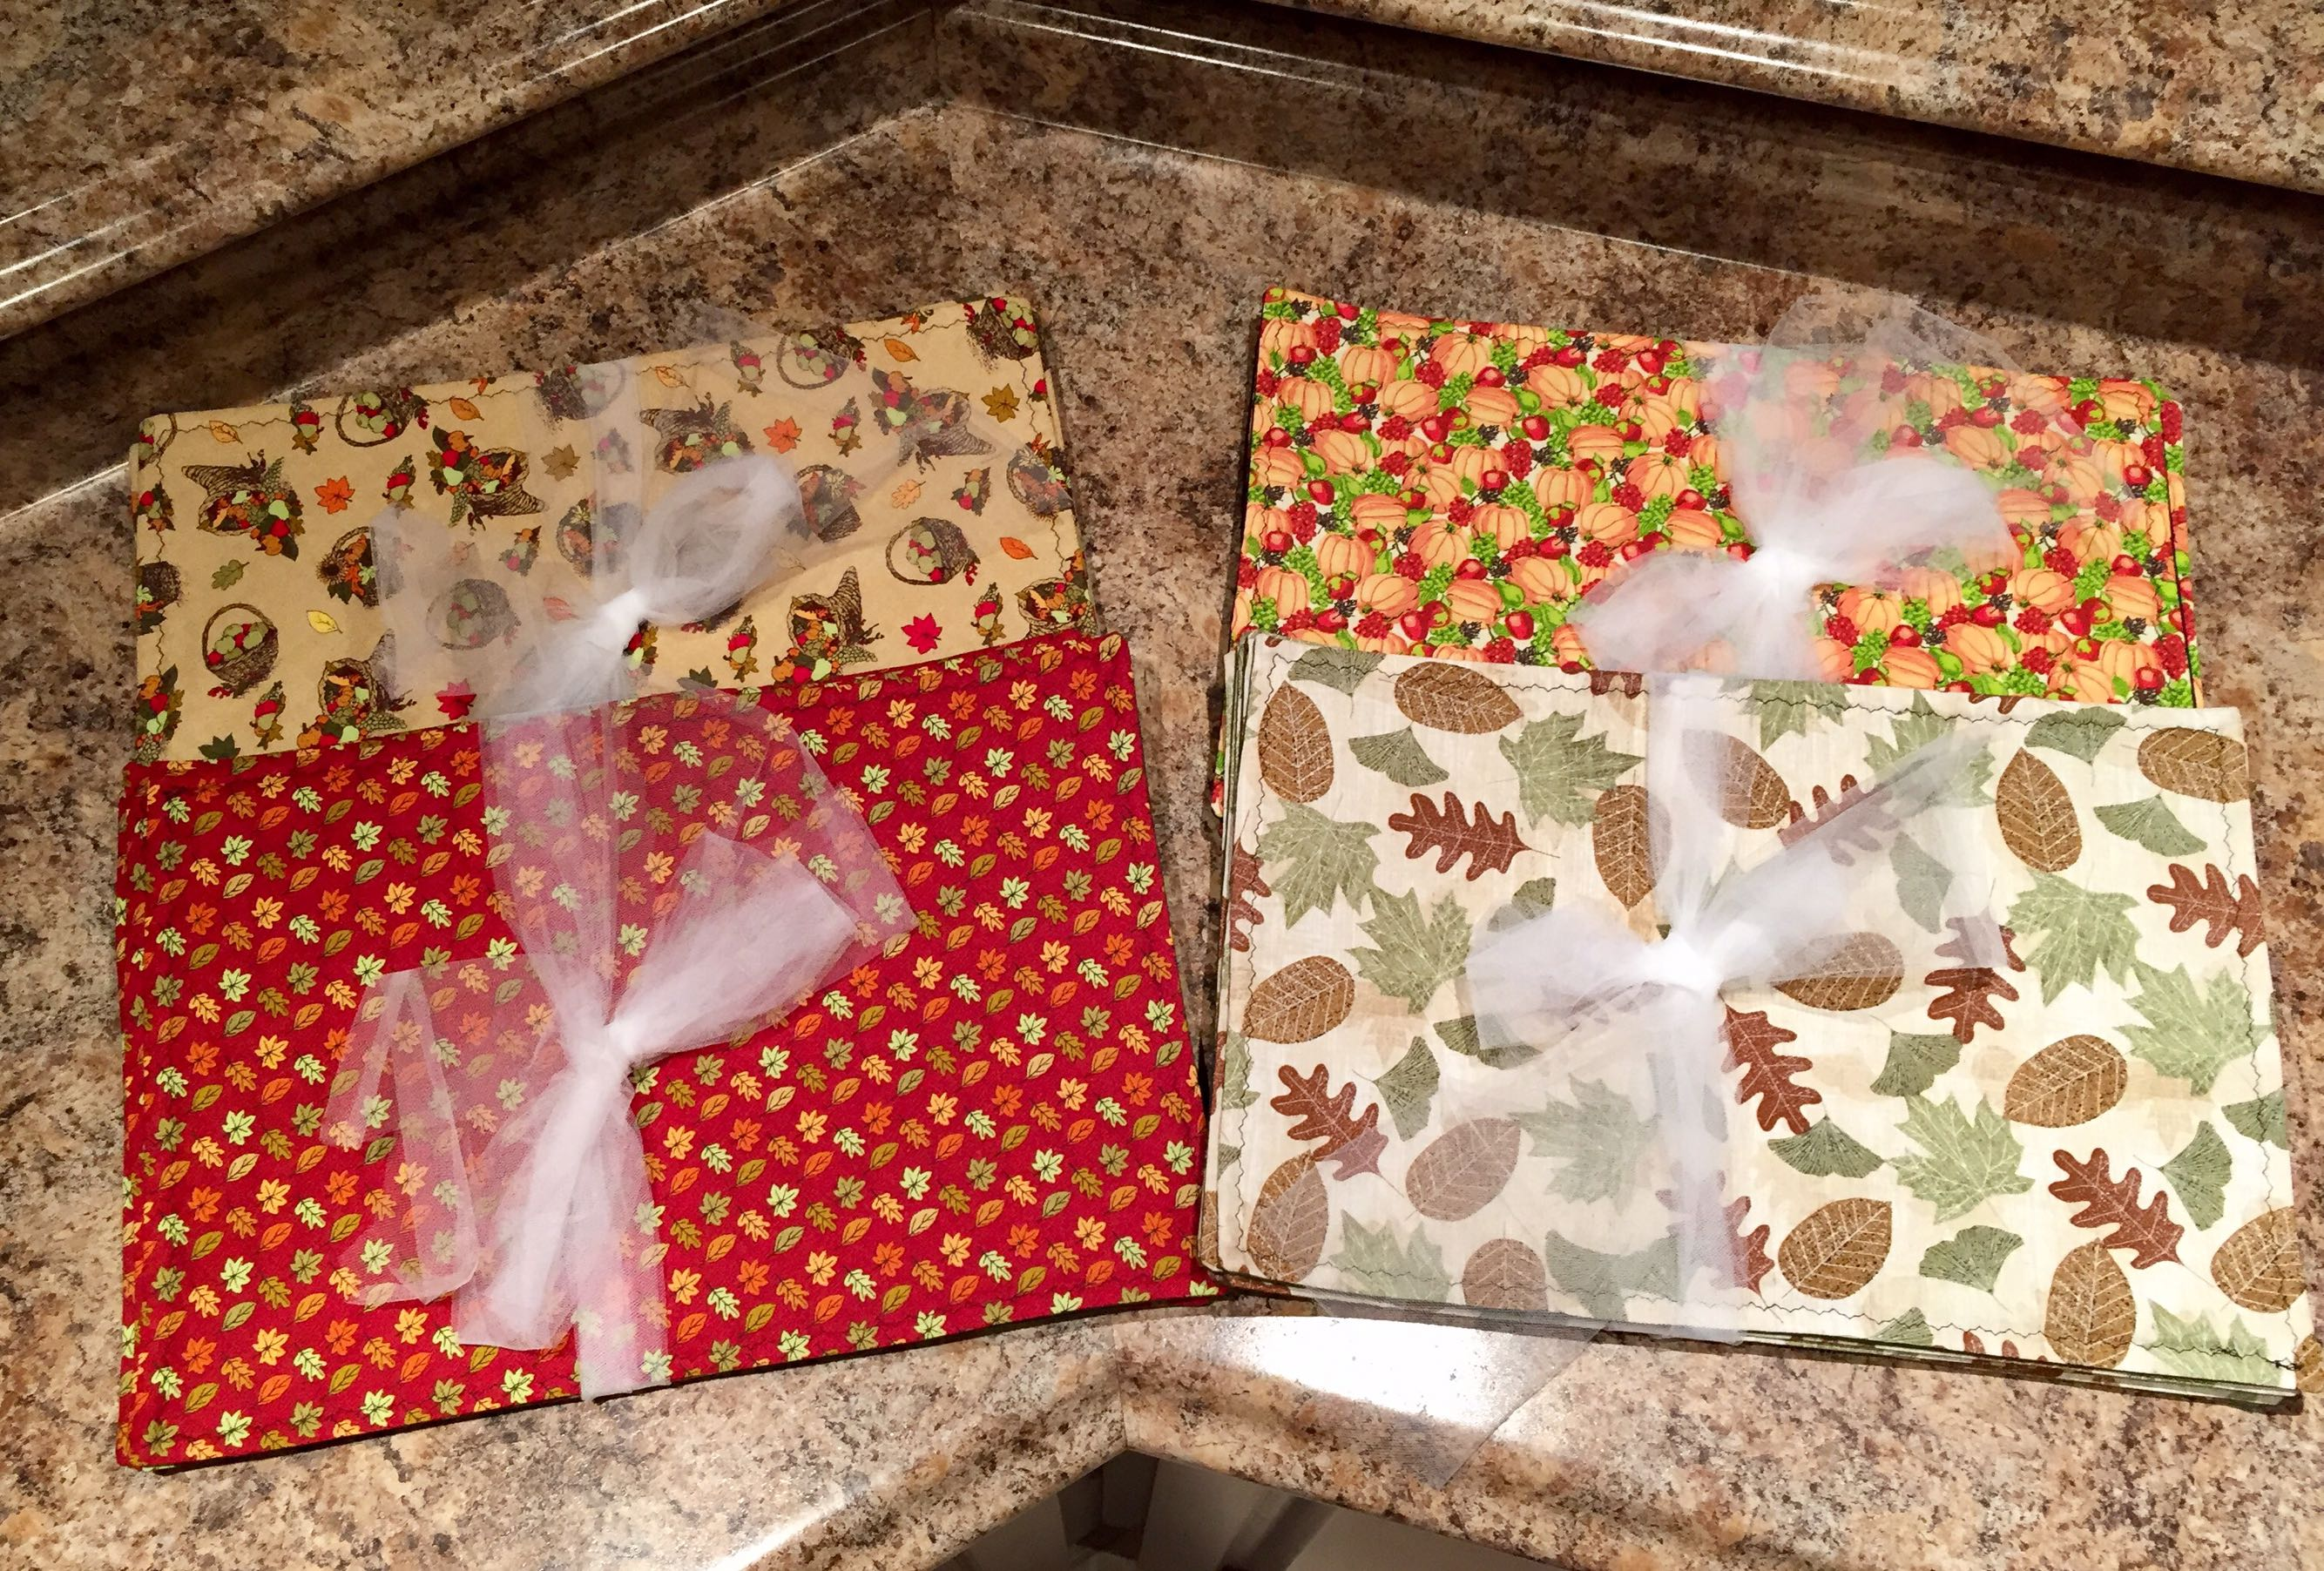 Homemade placemats